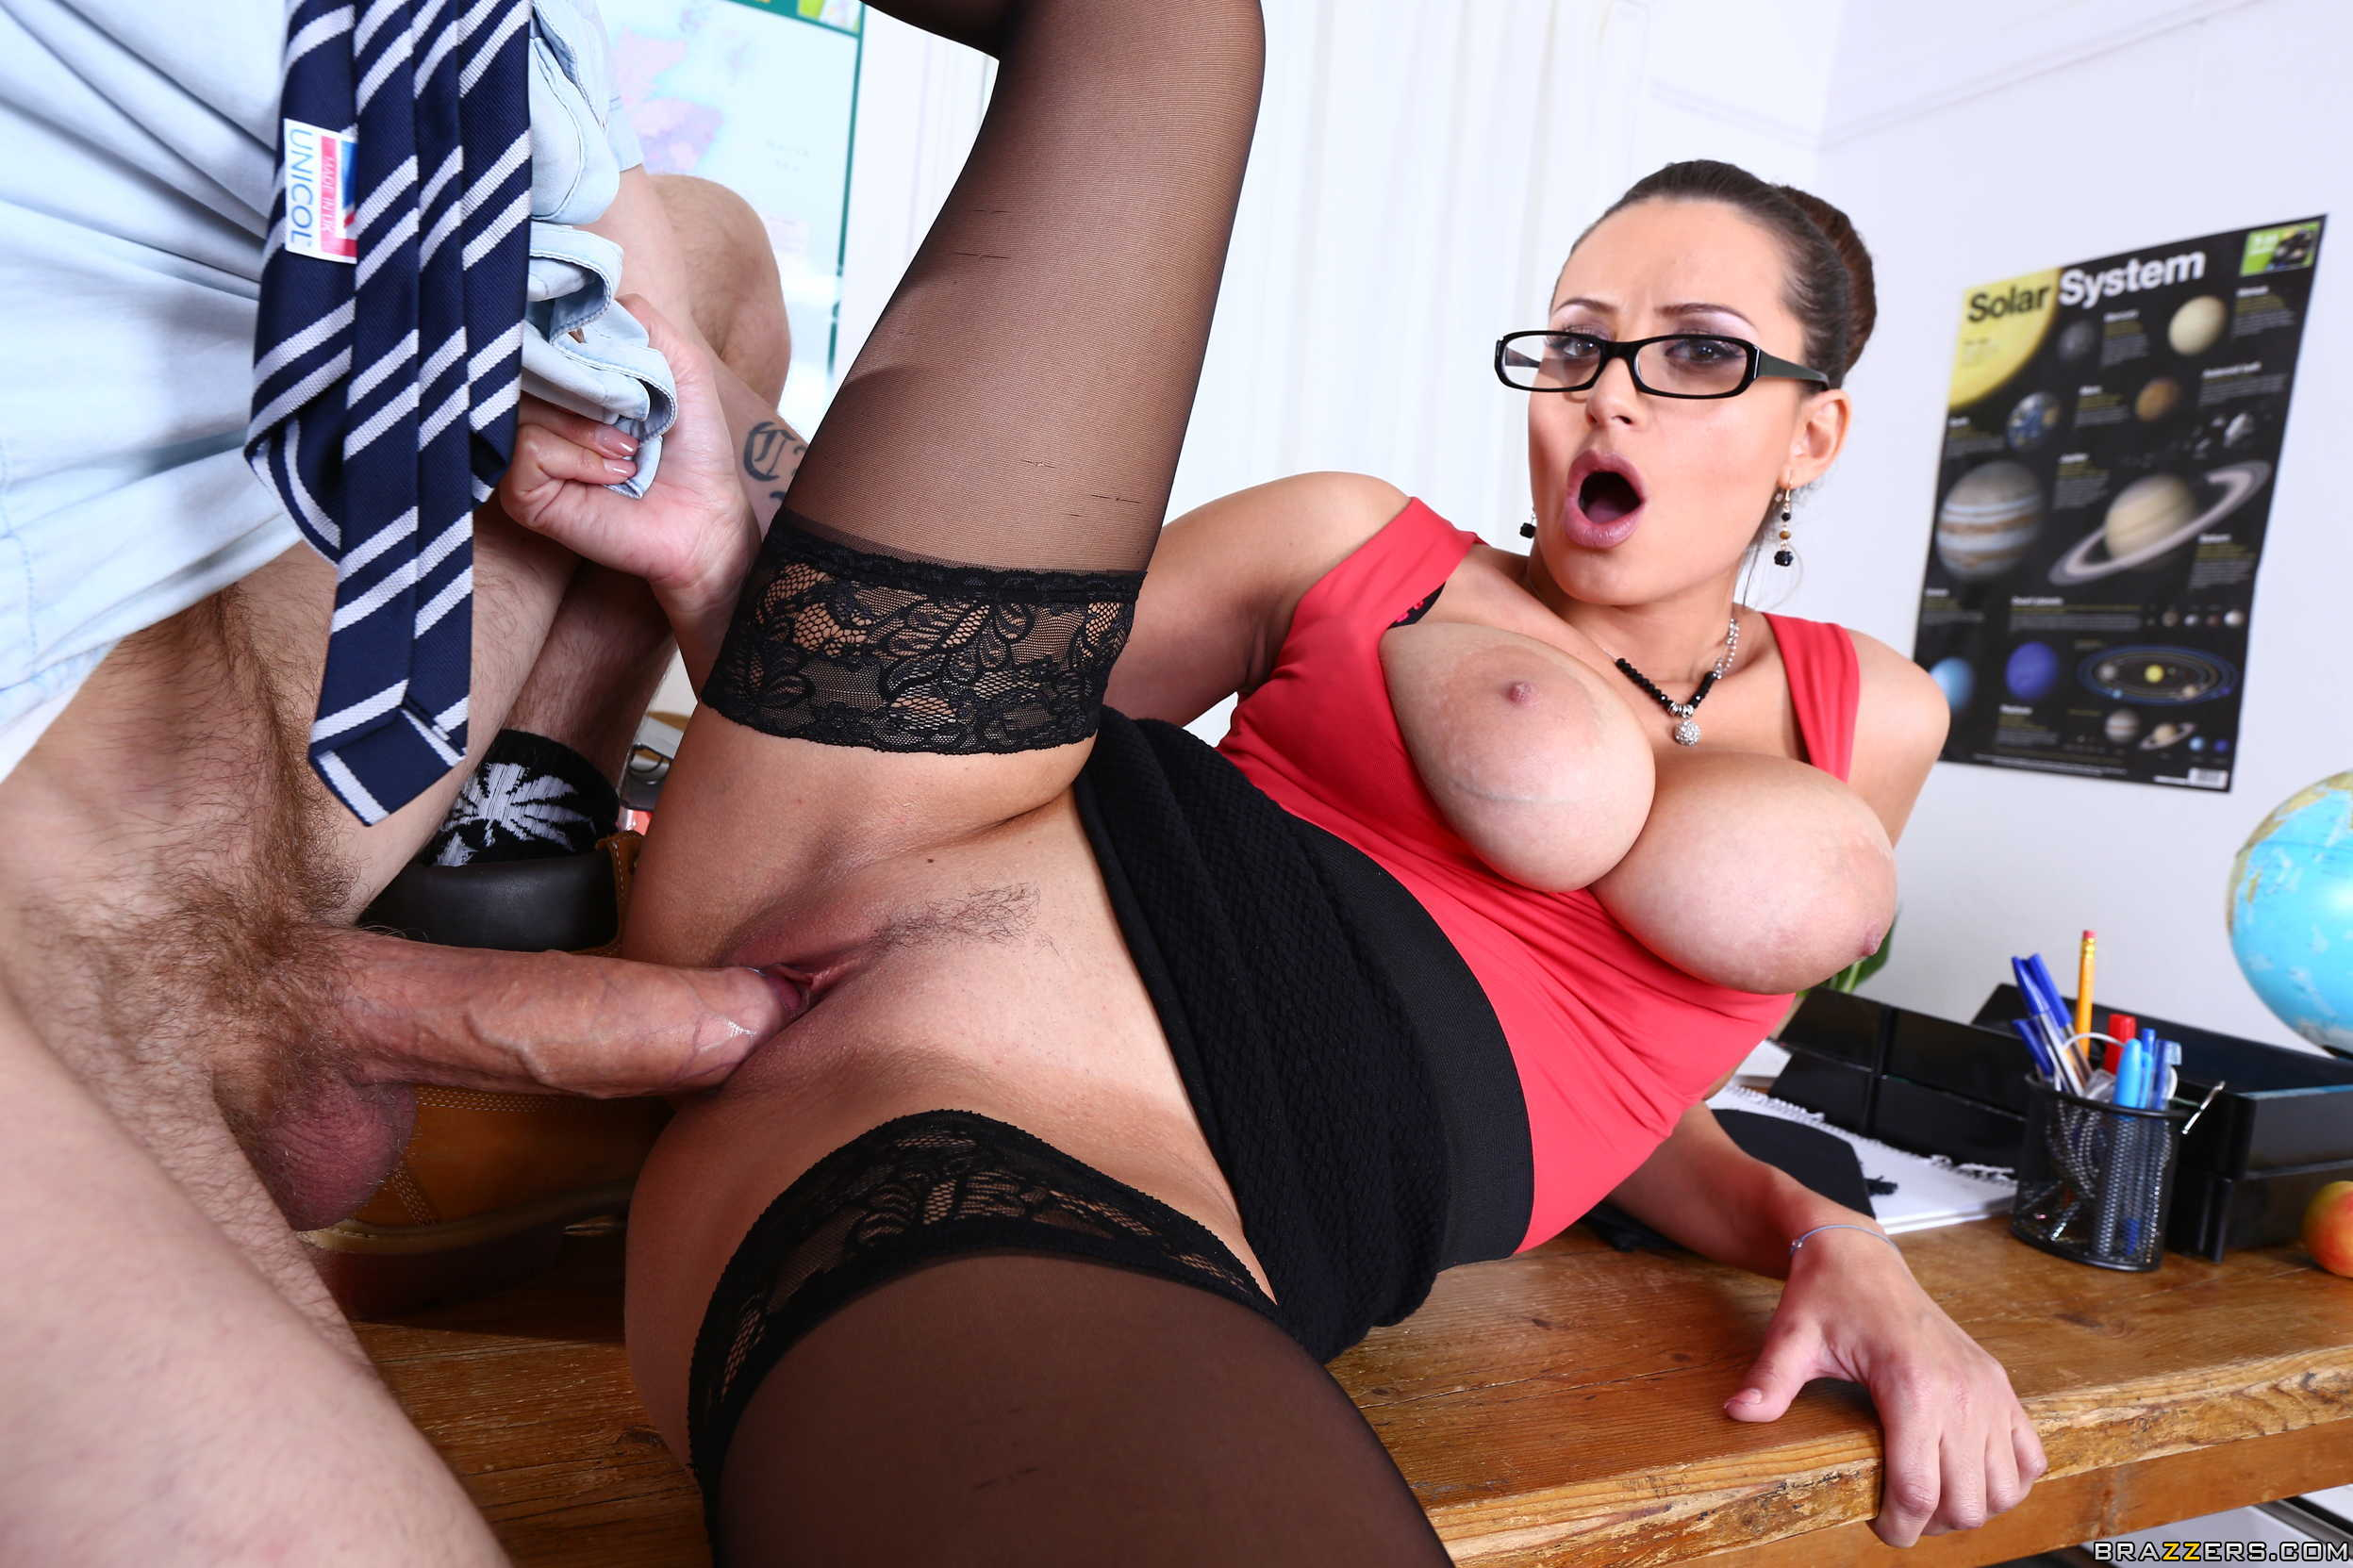 image Brazzers big tits at school big tits in history part 2 s